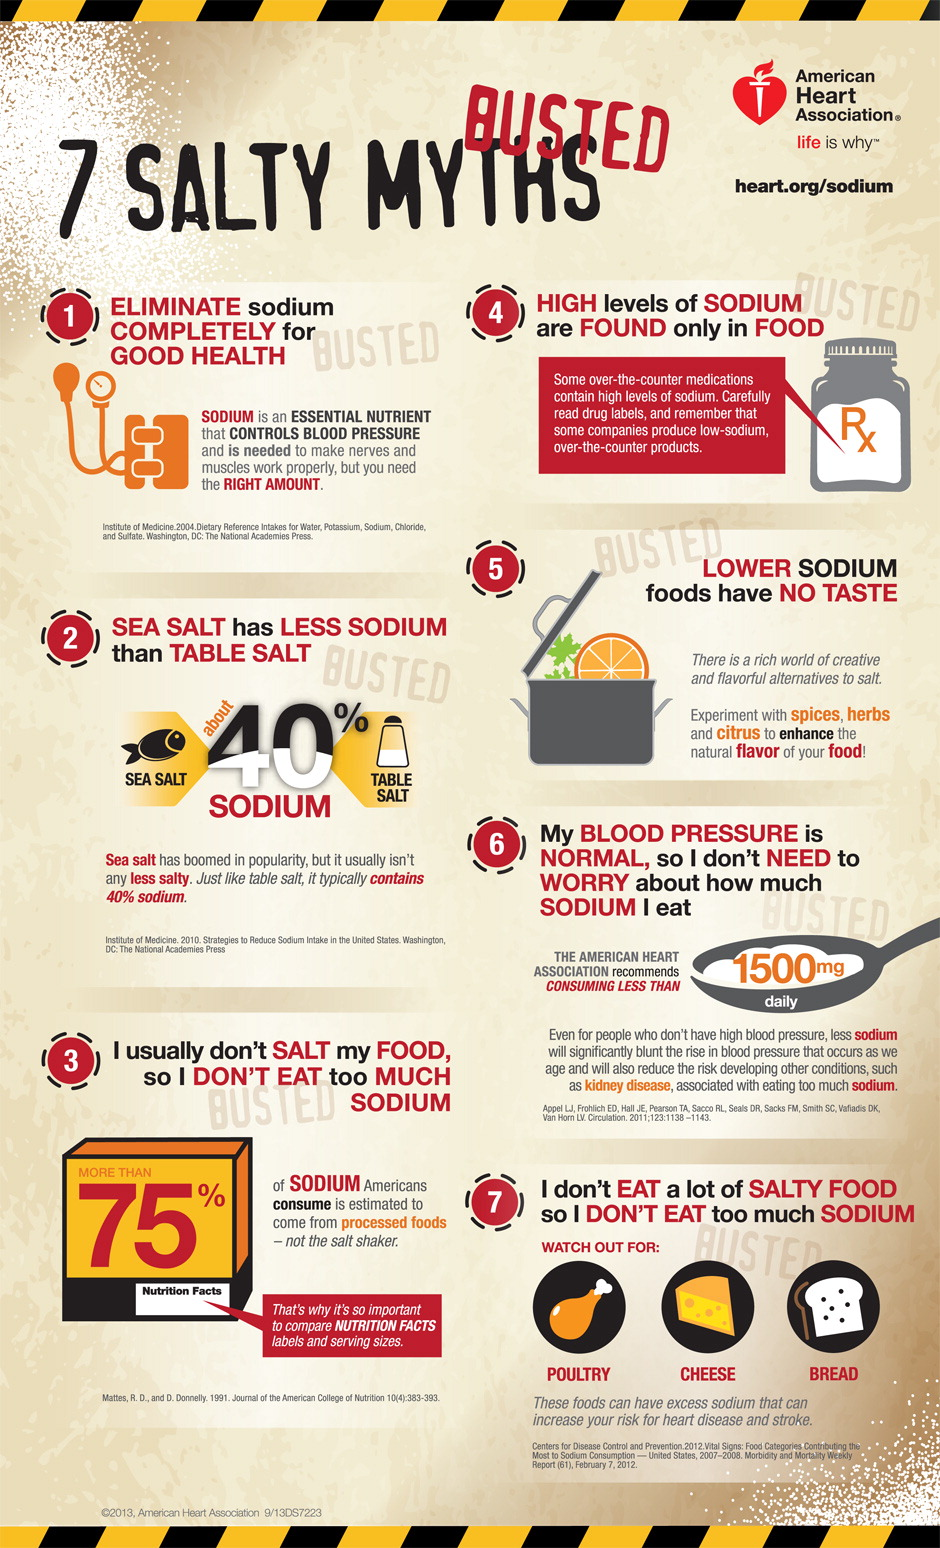 http://www.heart.org/HEARTORG/HealthyLiving/HealthyEating/Nutrition/About-Sodium-Salt_UCM_463416_Article.jsp#.VraYhlnUUVQ